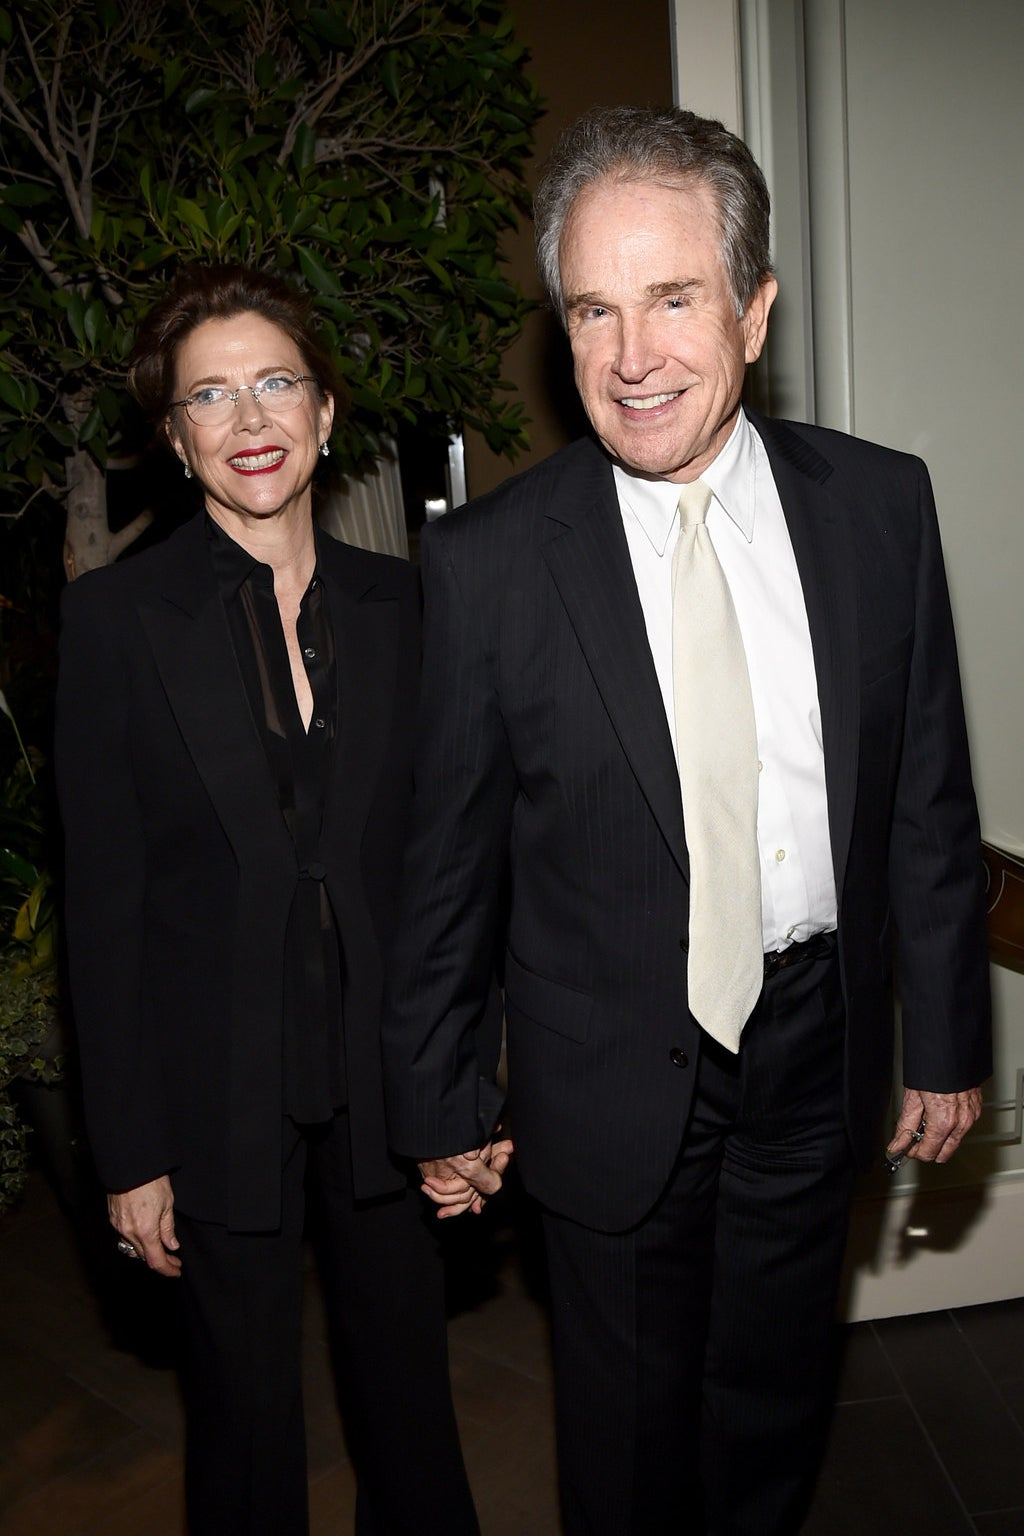 The couple in 2014.